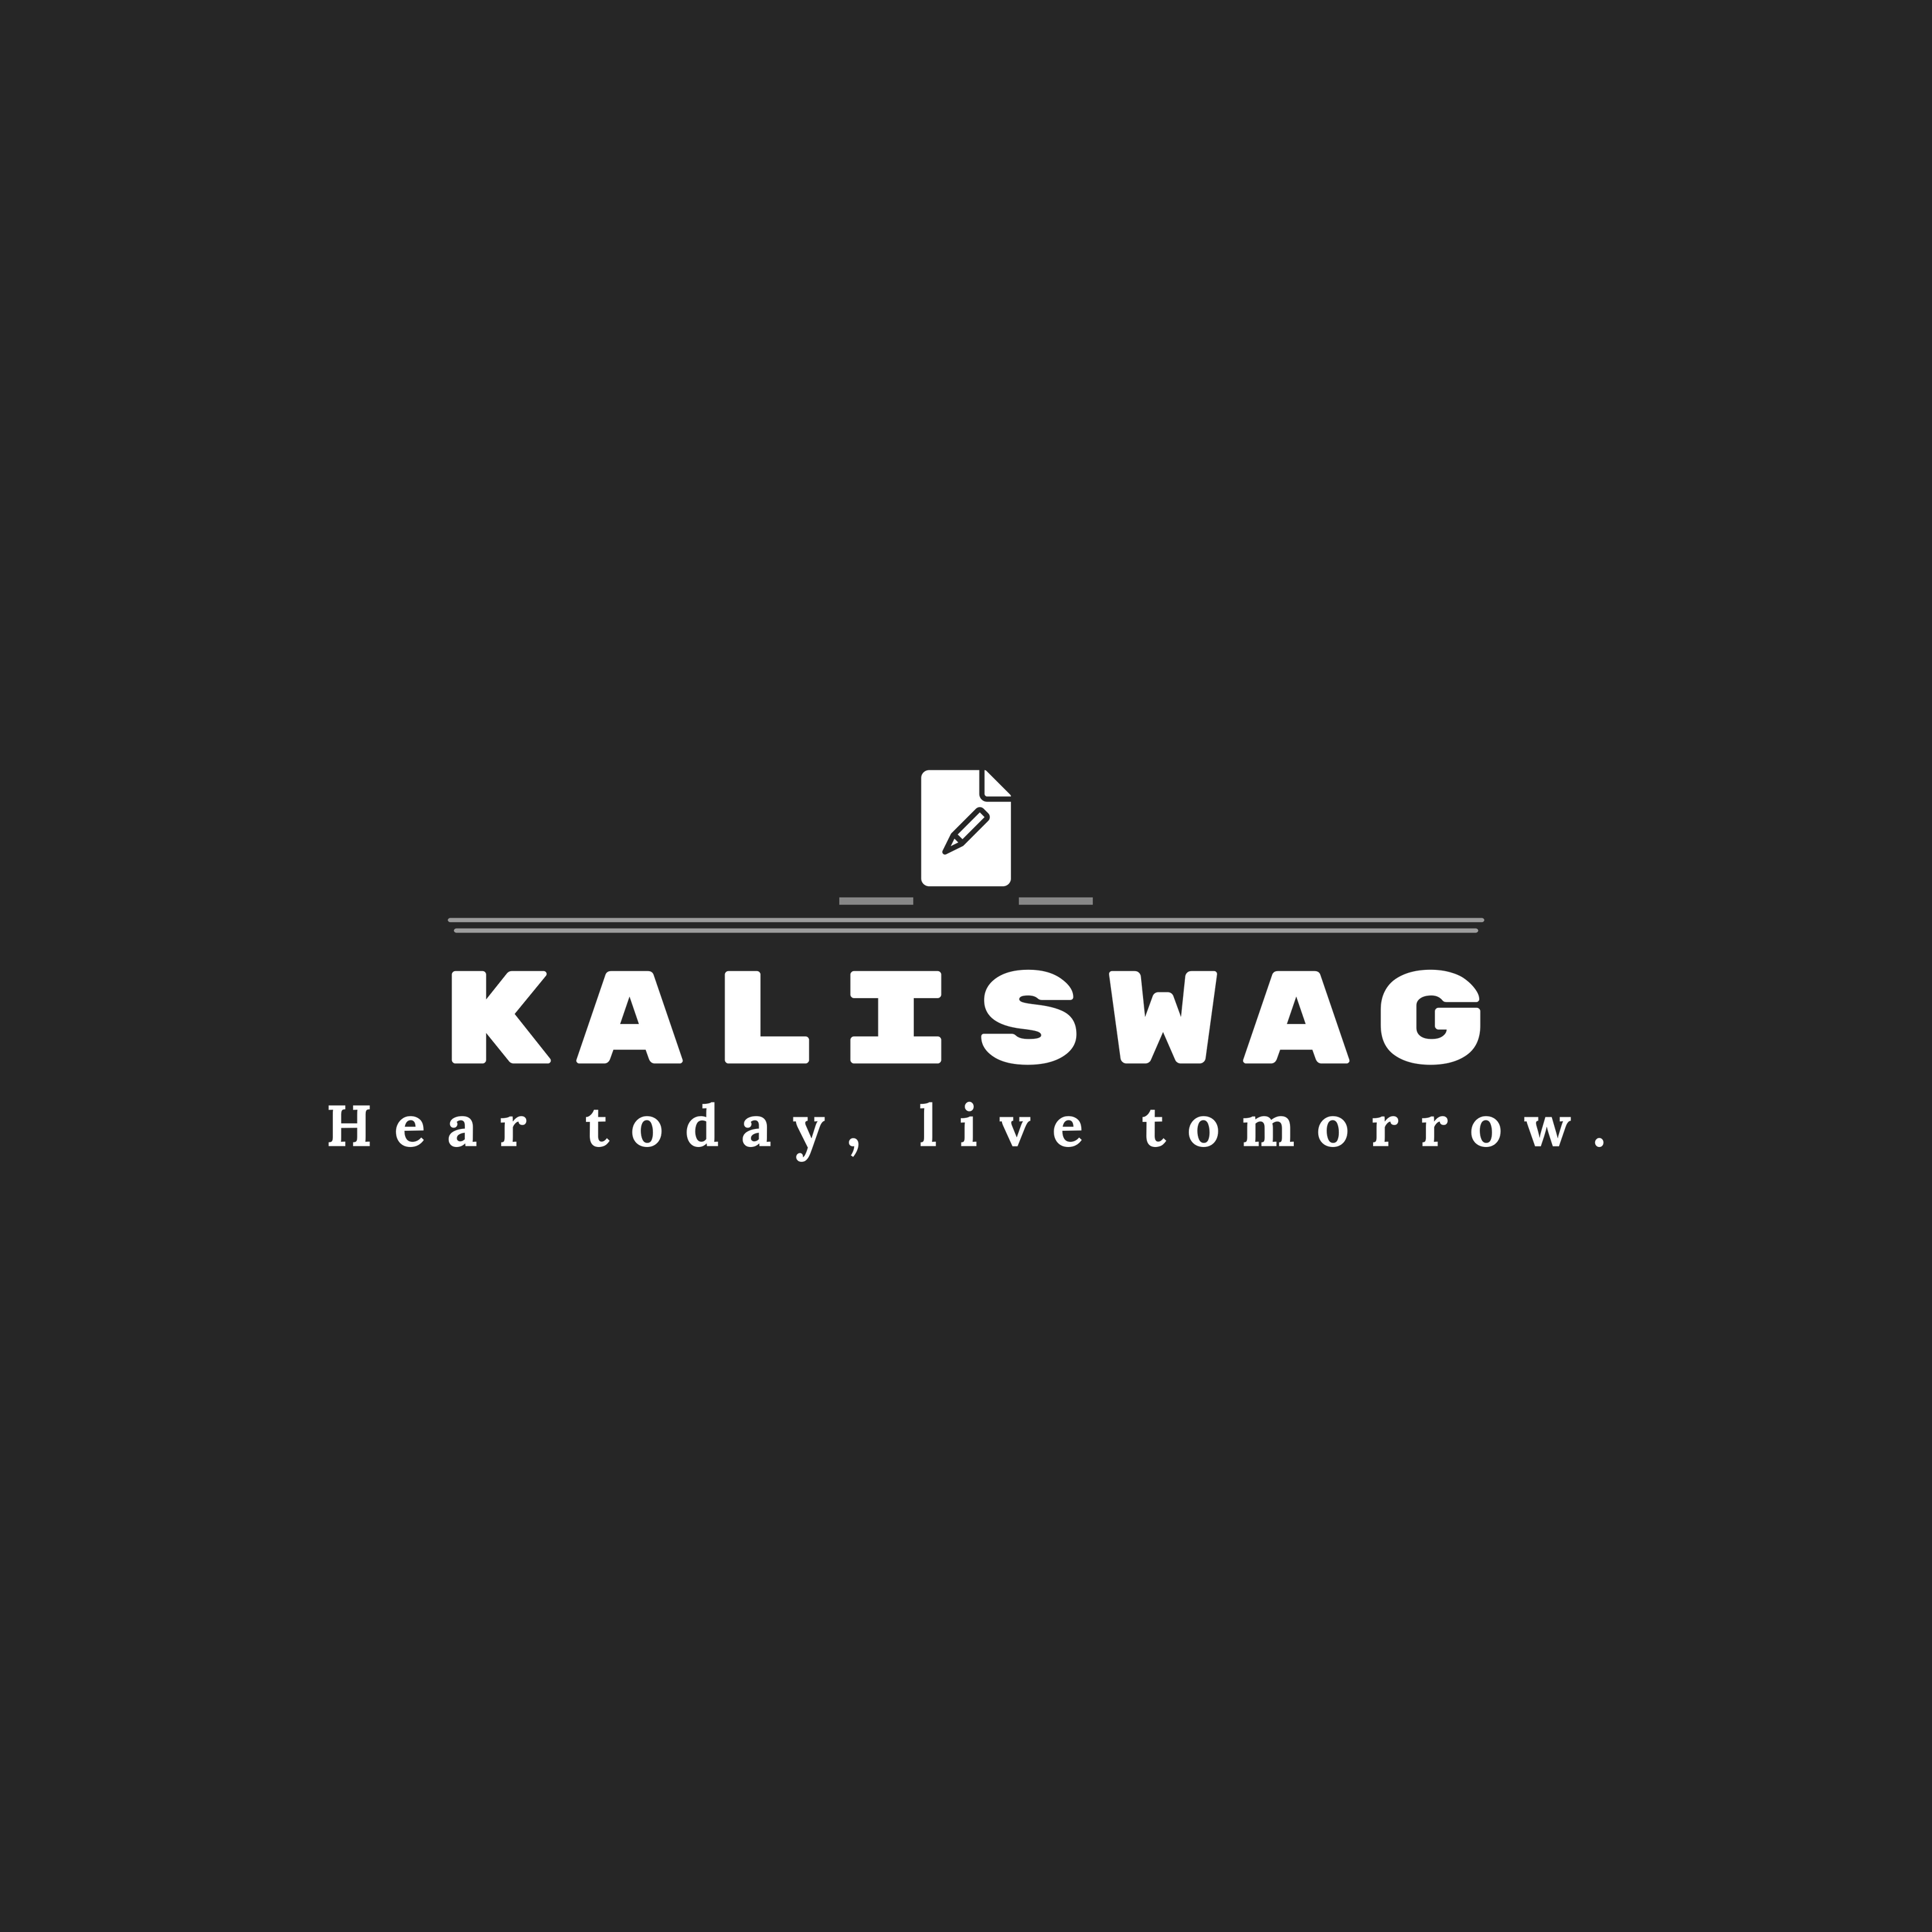 Kaliswag